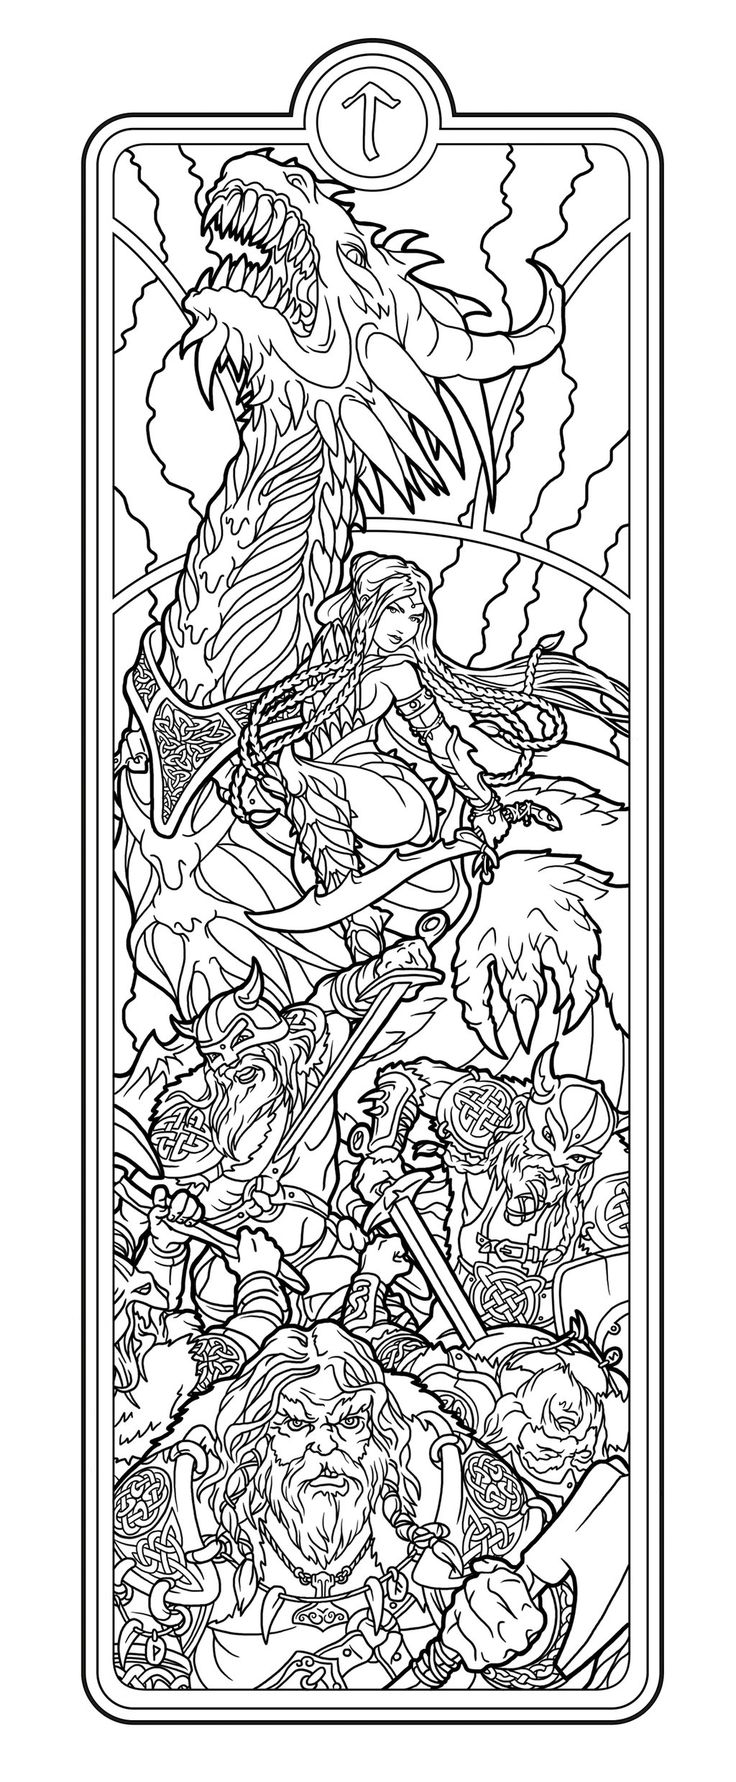 helheim battlemaid lines by deviantashtarethdeviantartcom on deviantart adult coloring pagescolouring